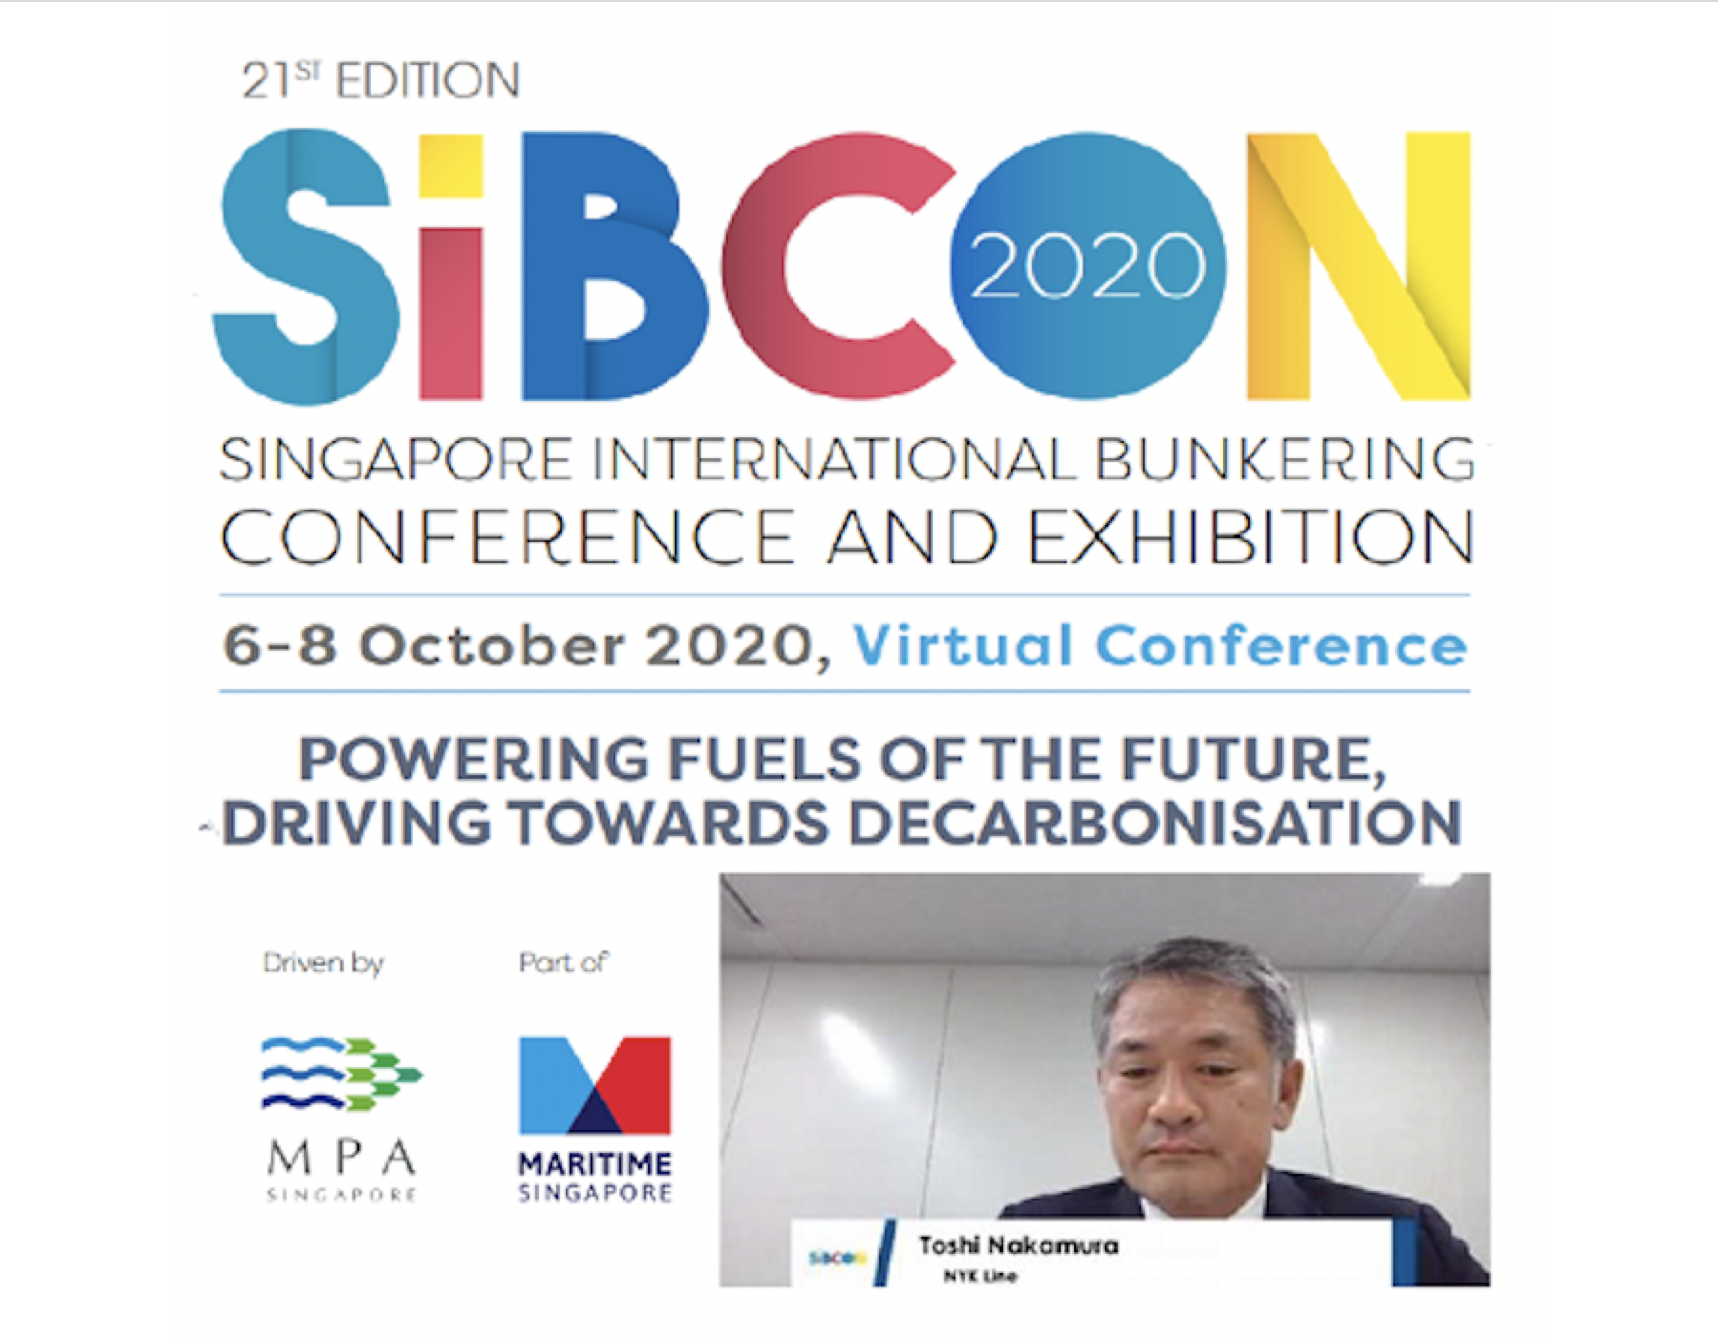 NYK line reveals decarbonisation plan in panel on alternative bunker fuels at SIBCON 2020